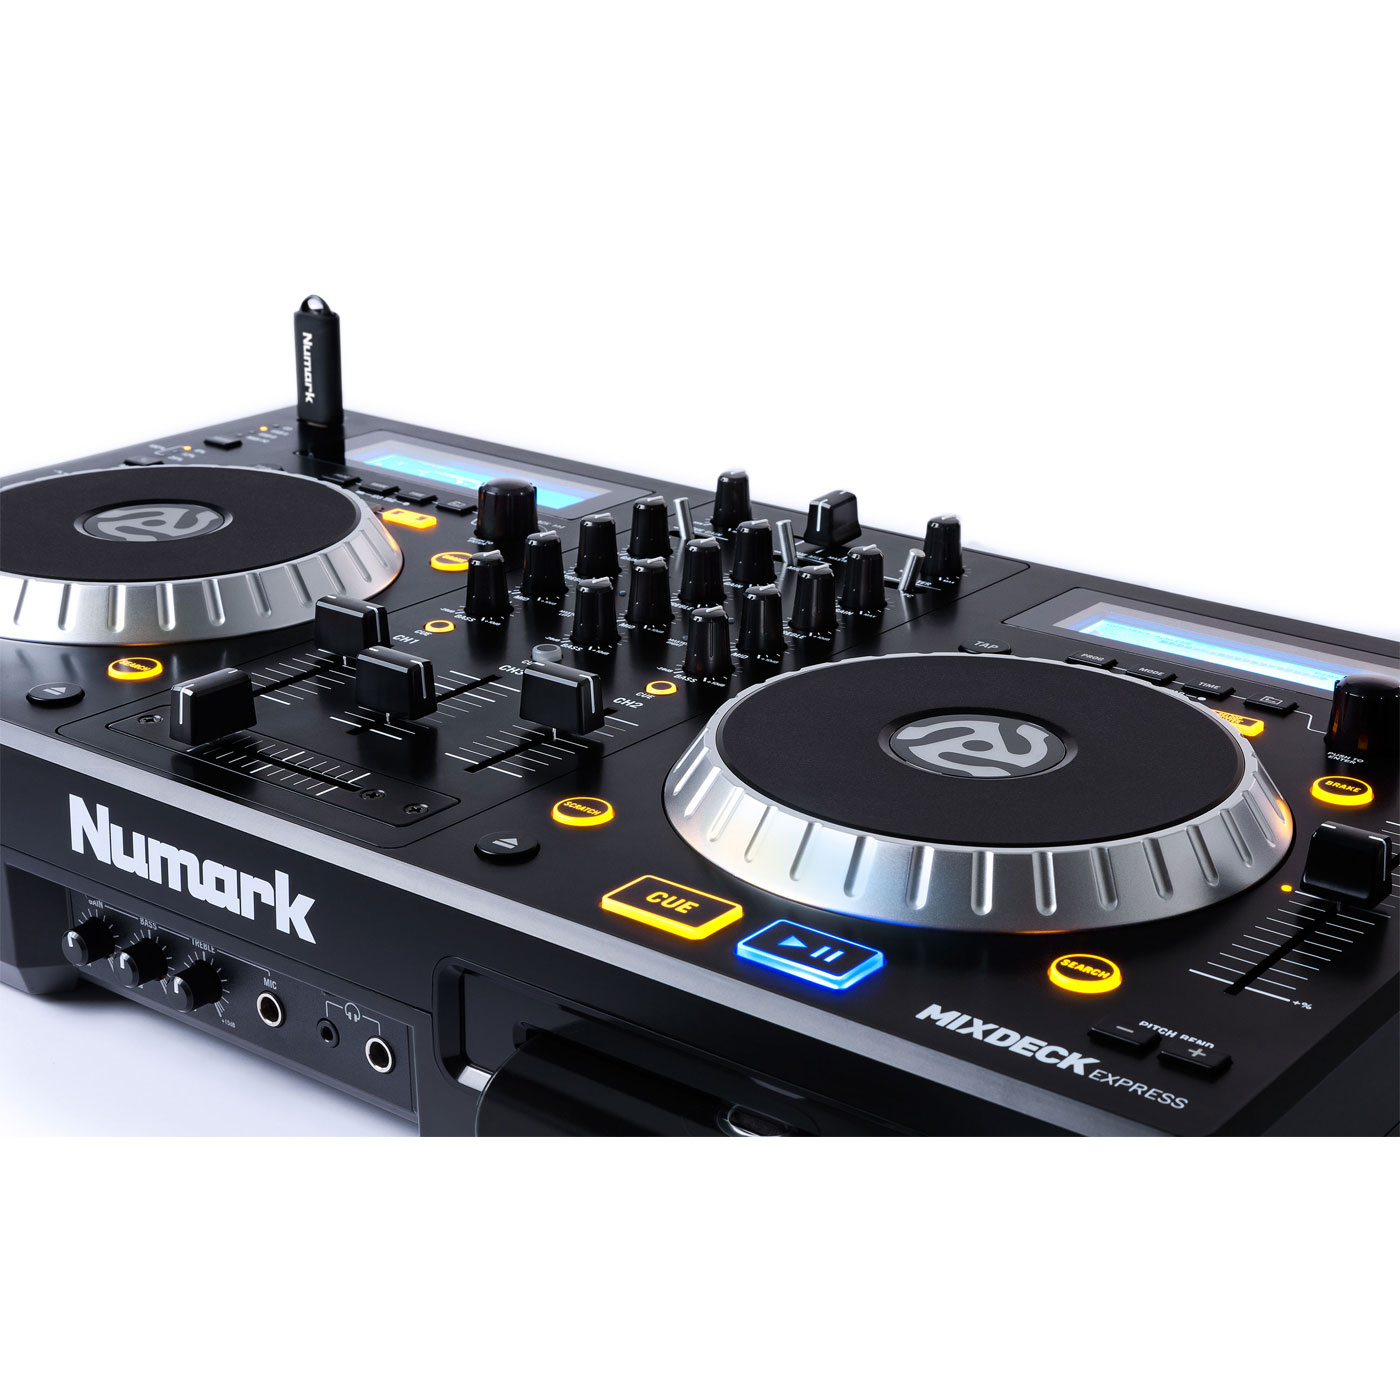 numark mixdeck express table de mixage numark sur ldlc. Black Bedroom Furniture Sets. Home Design Ideas